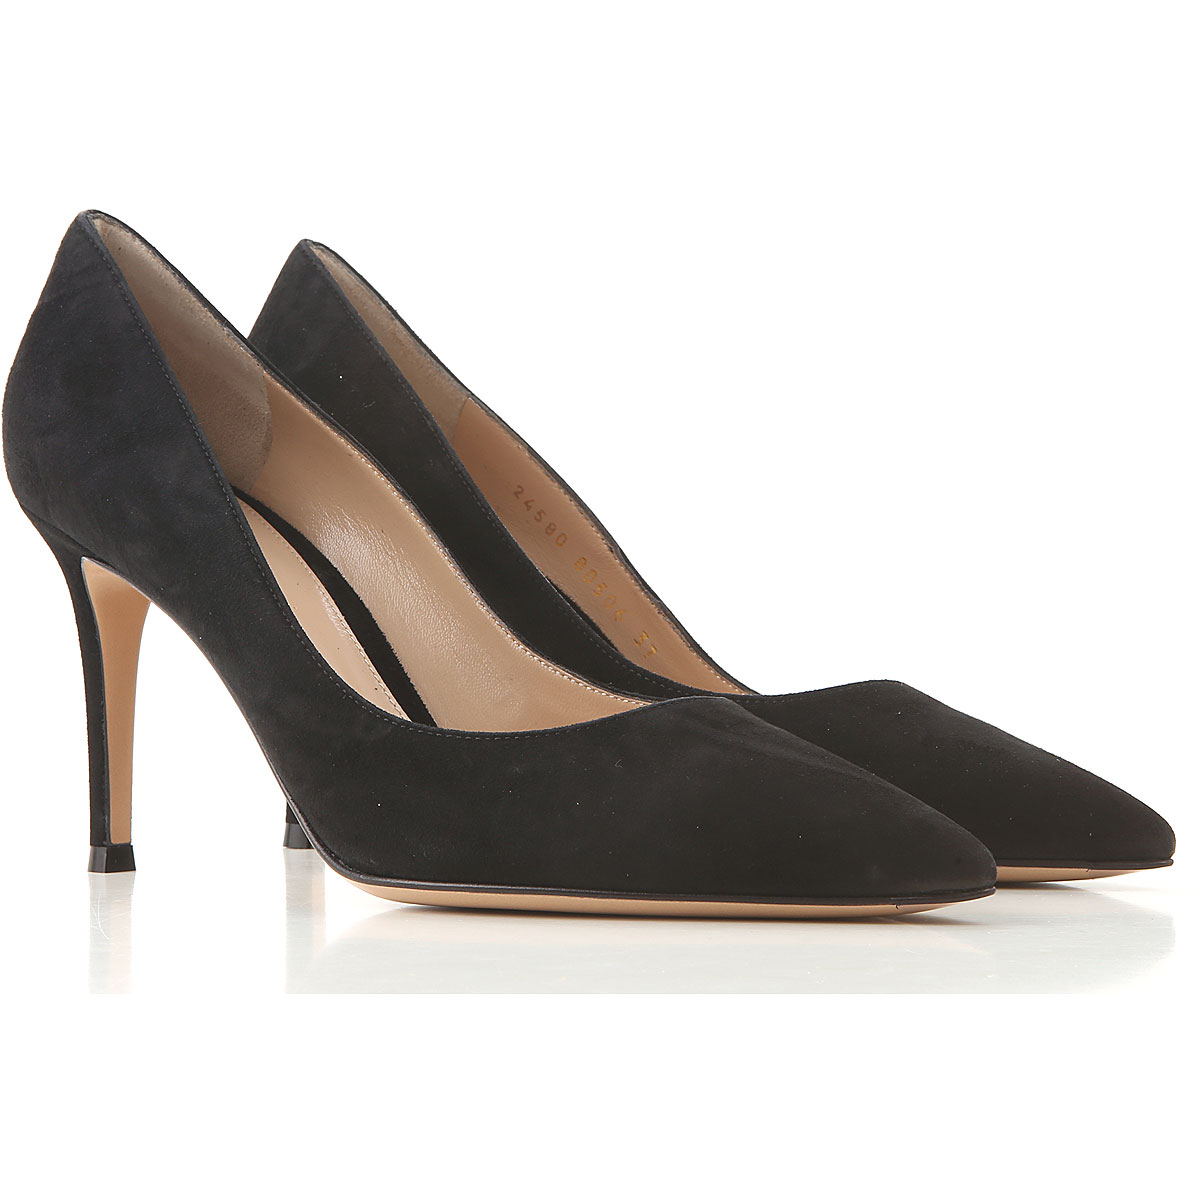 Gianvito Rossi Pumps & High Heels for Women On Sale, Black, Suede leather, 2019, 6.5 8.5 9.5